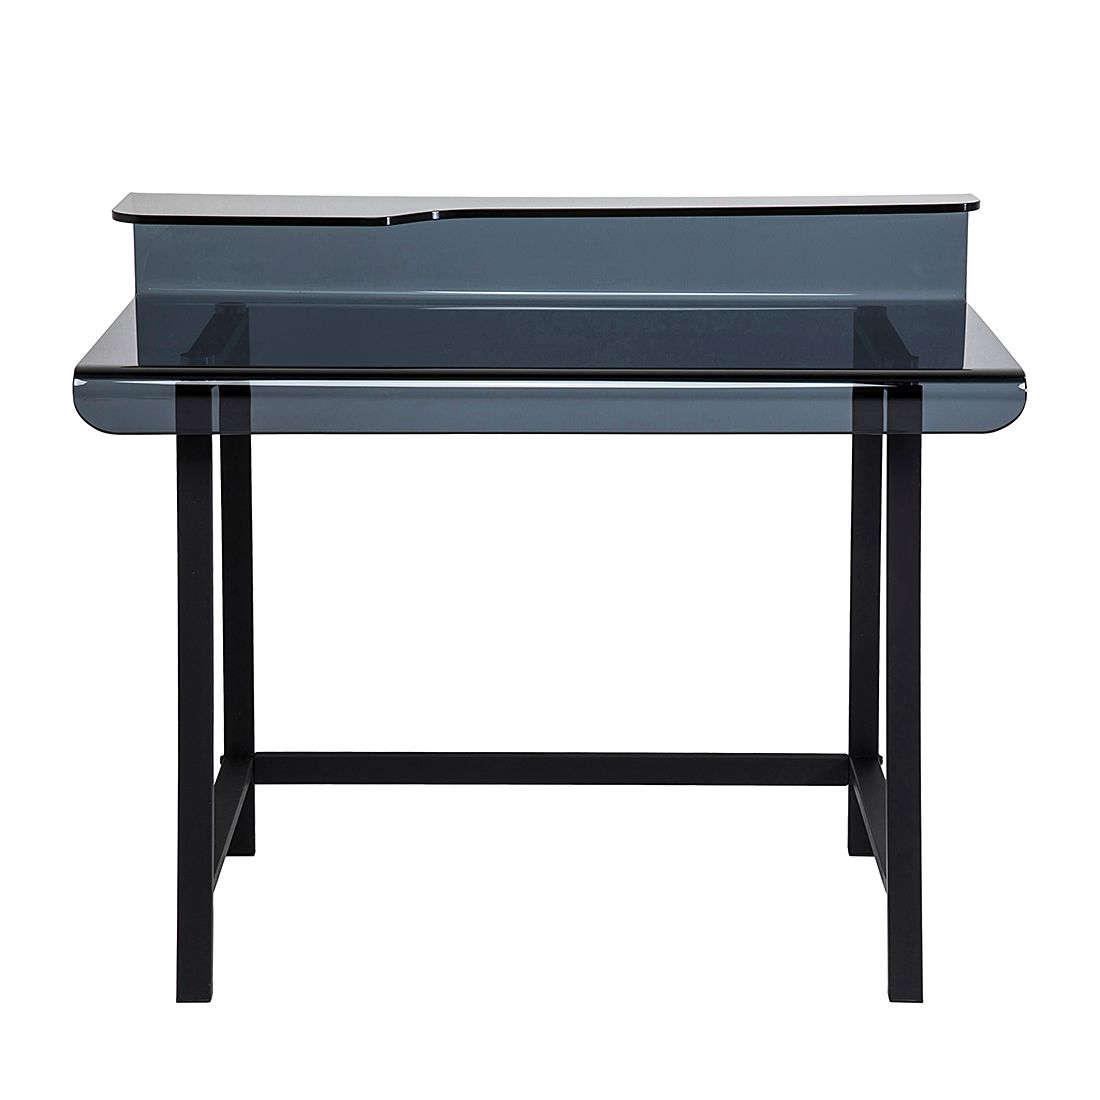 miliboo bureau design metal gris et noir comparer les prix et promo. Black Bedroom Furniture Sets. Home Design Ideas